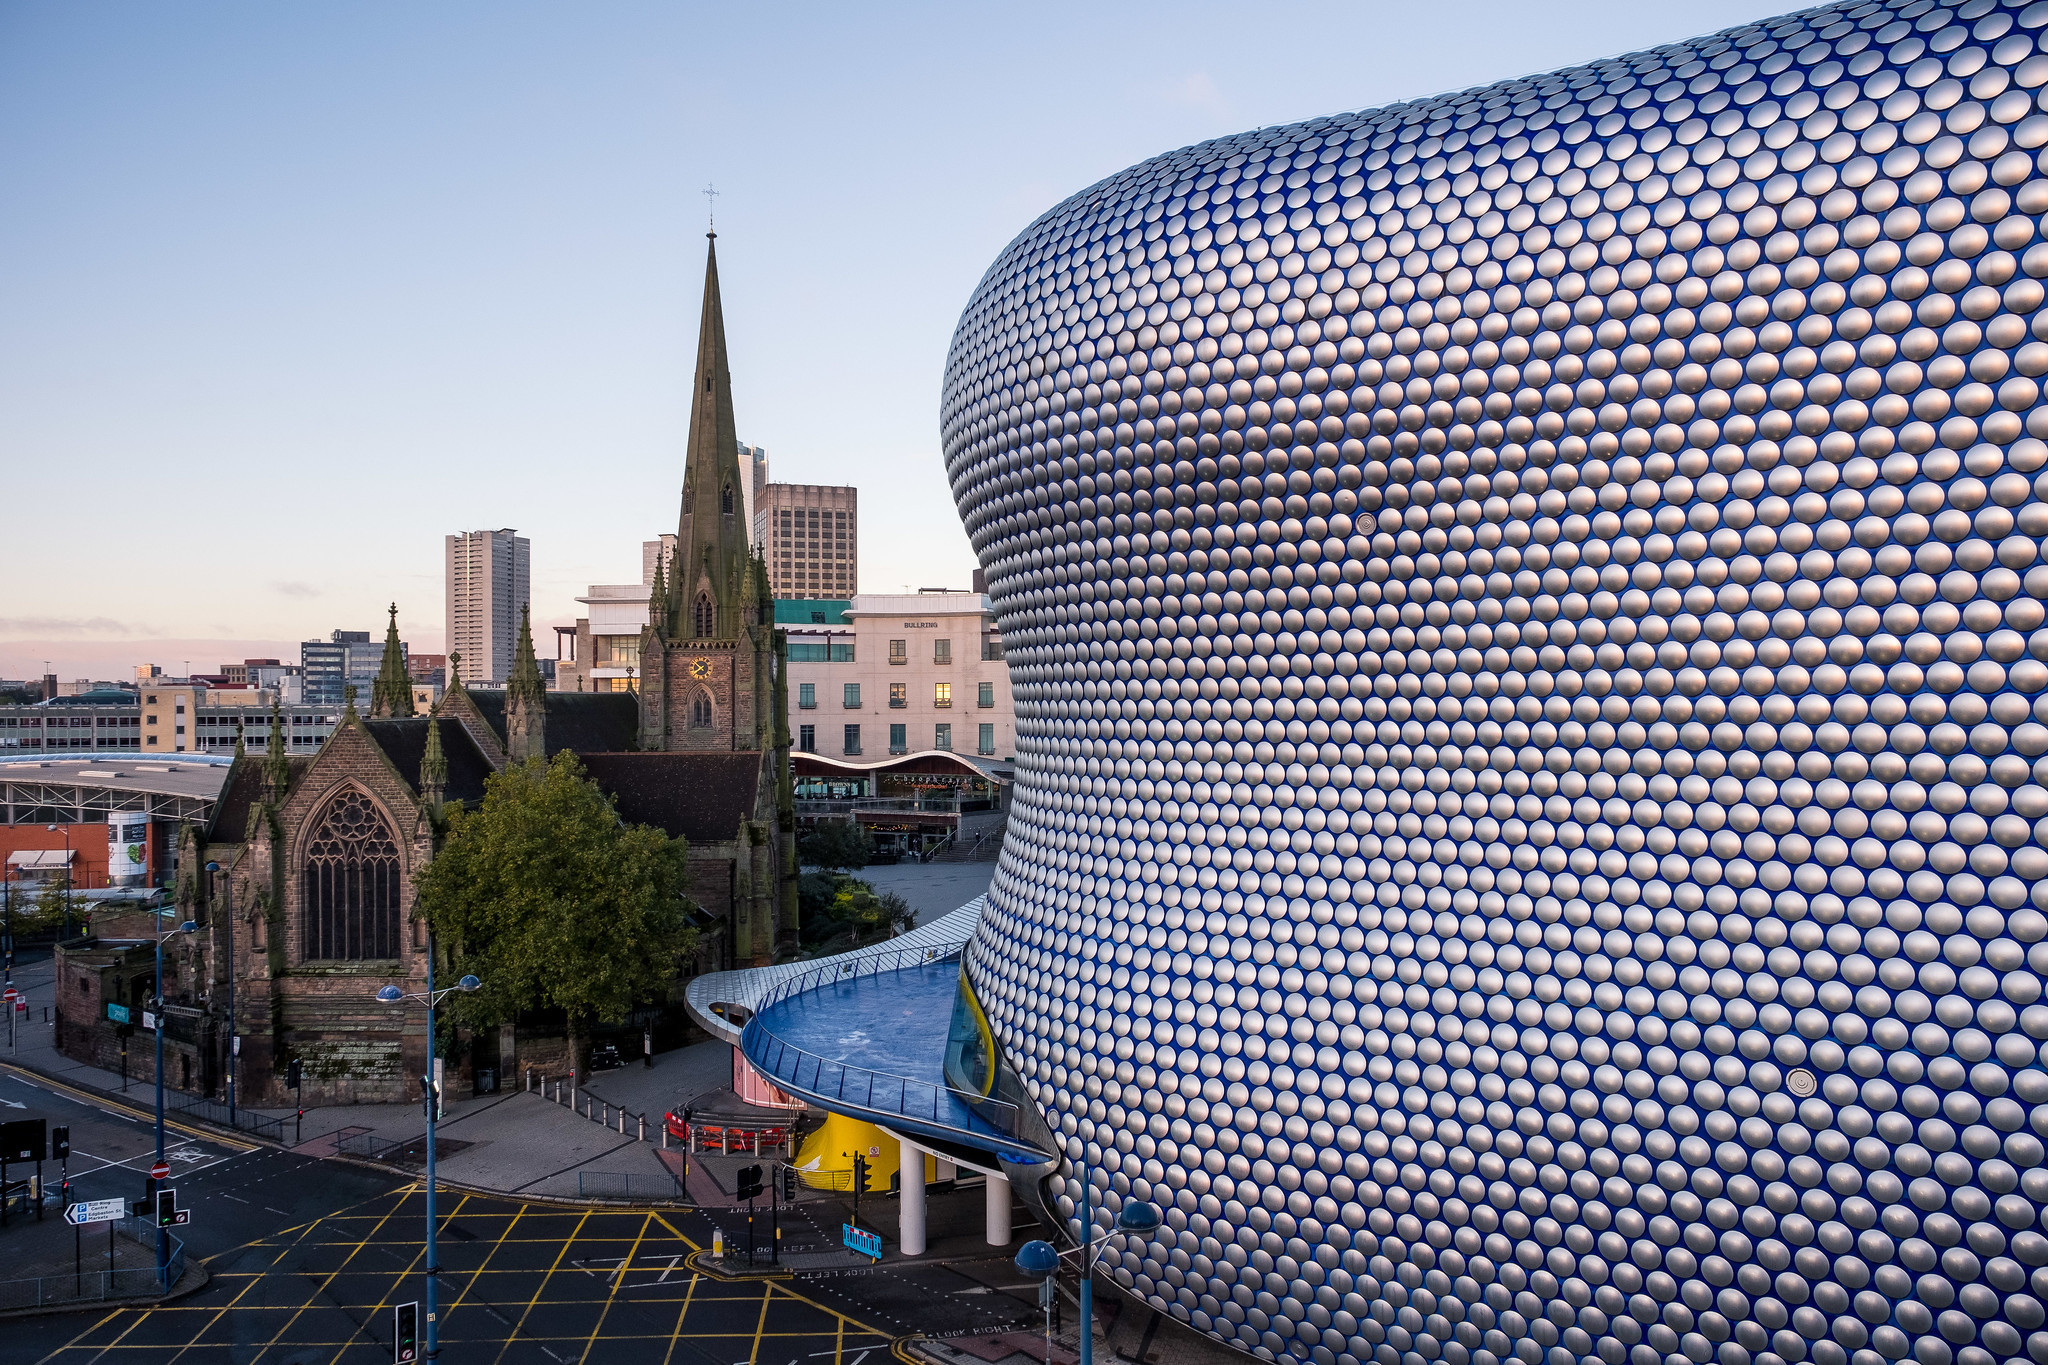 Birmingham City Council publishes strategy to secure hosting rights for major events